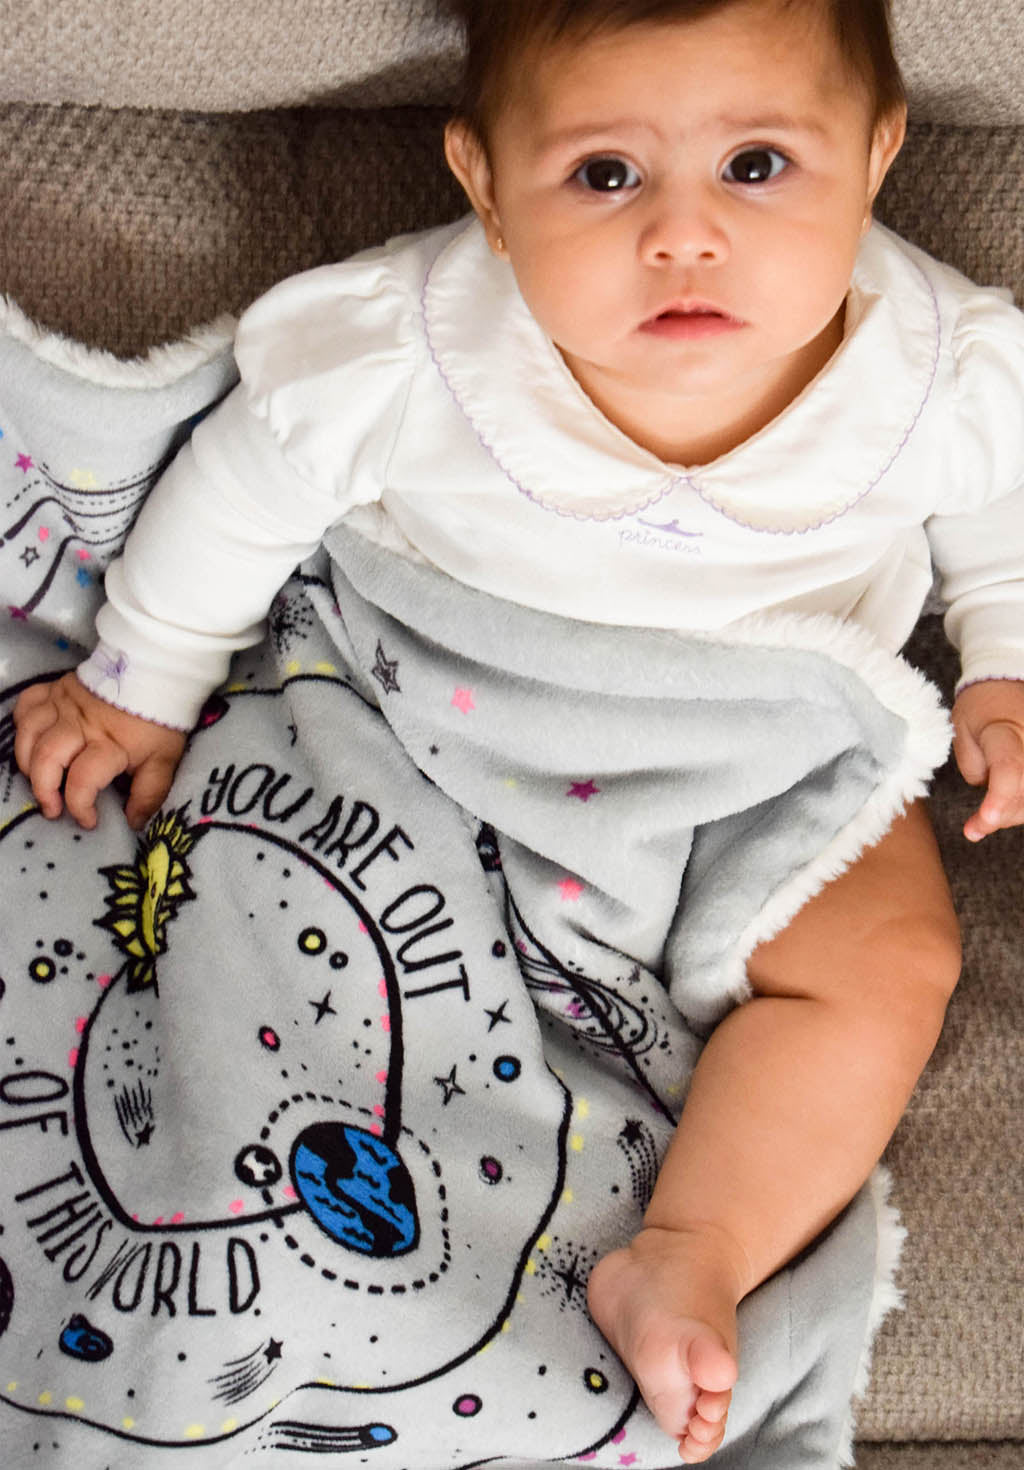 Baby Boy with Galaxy Security Blankie You Are Out of this World